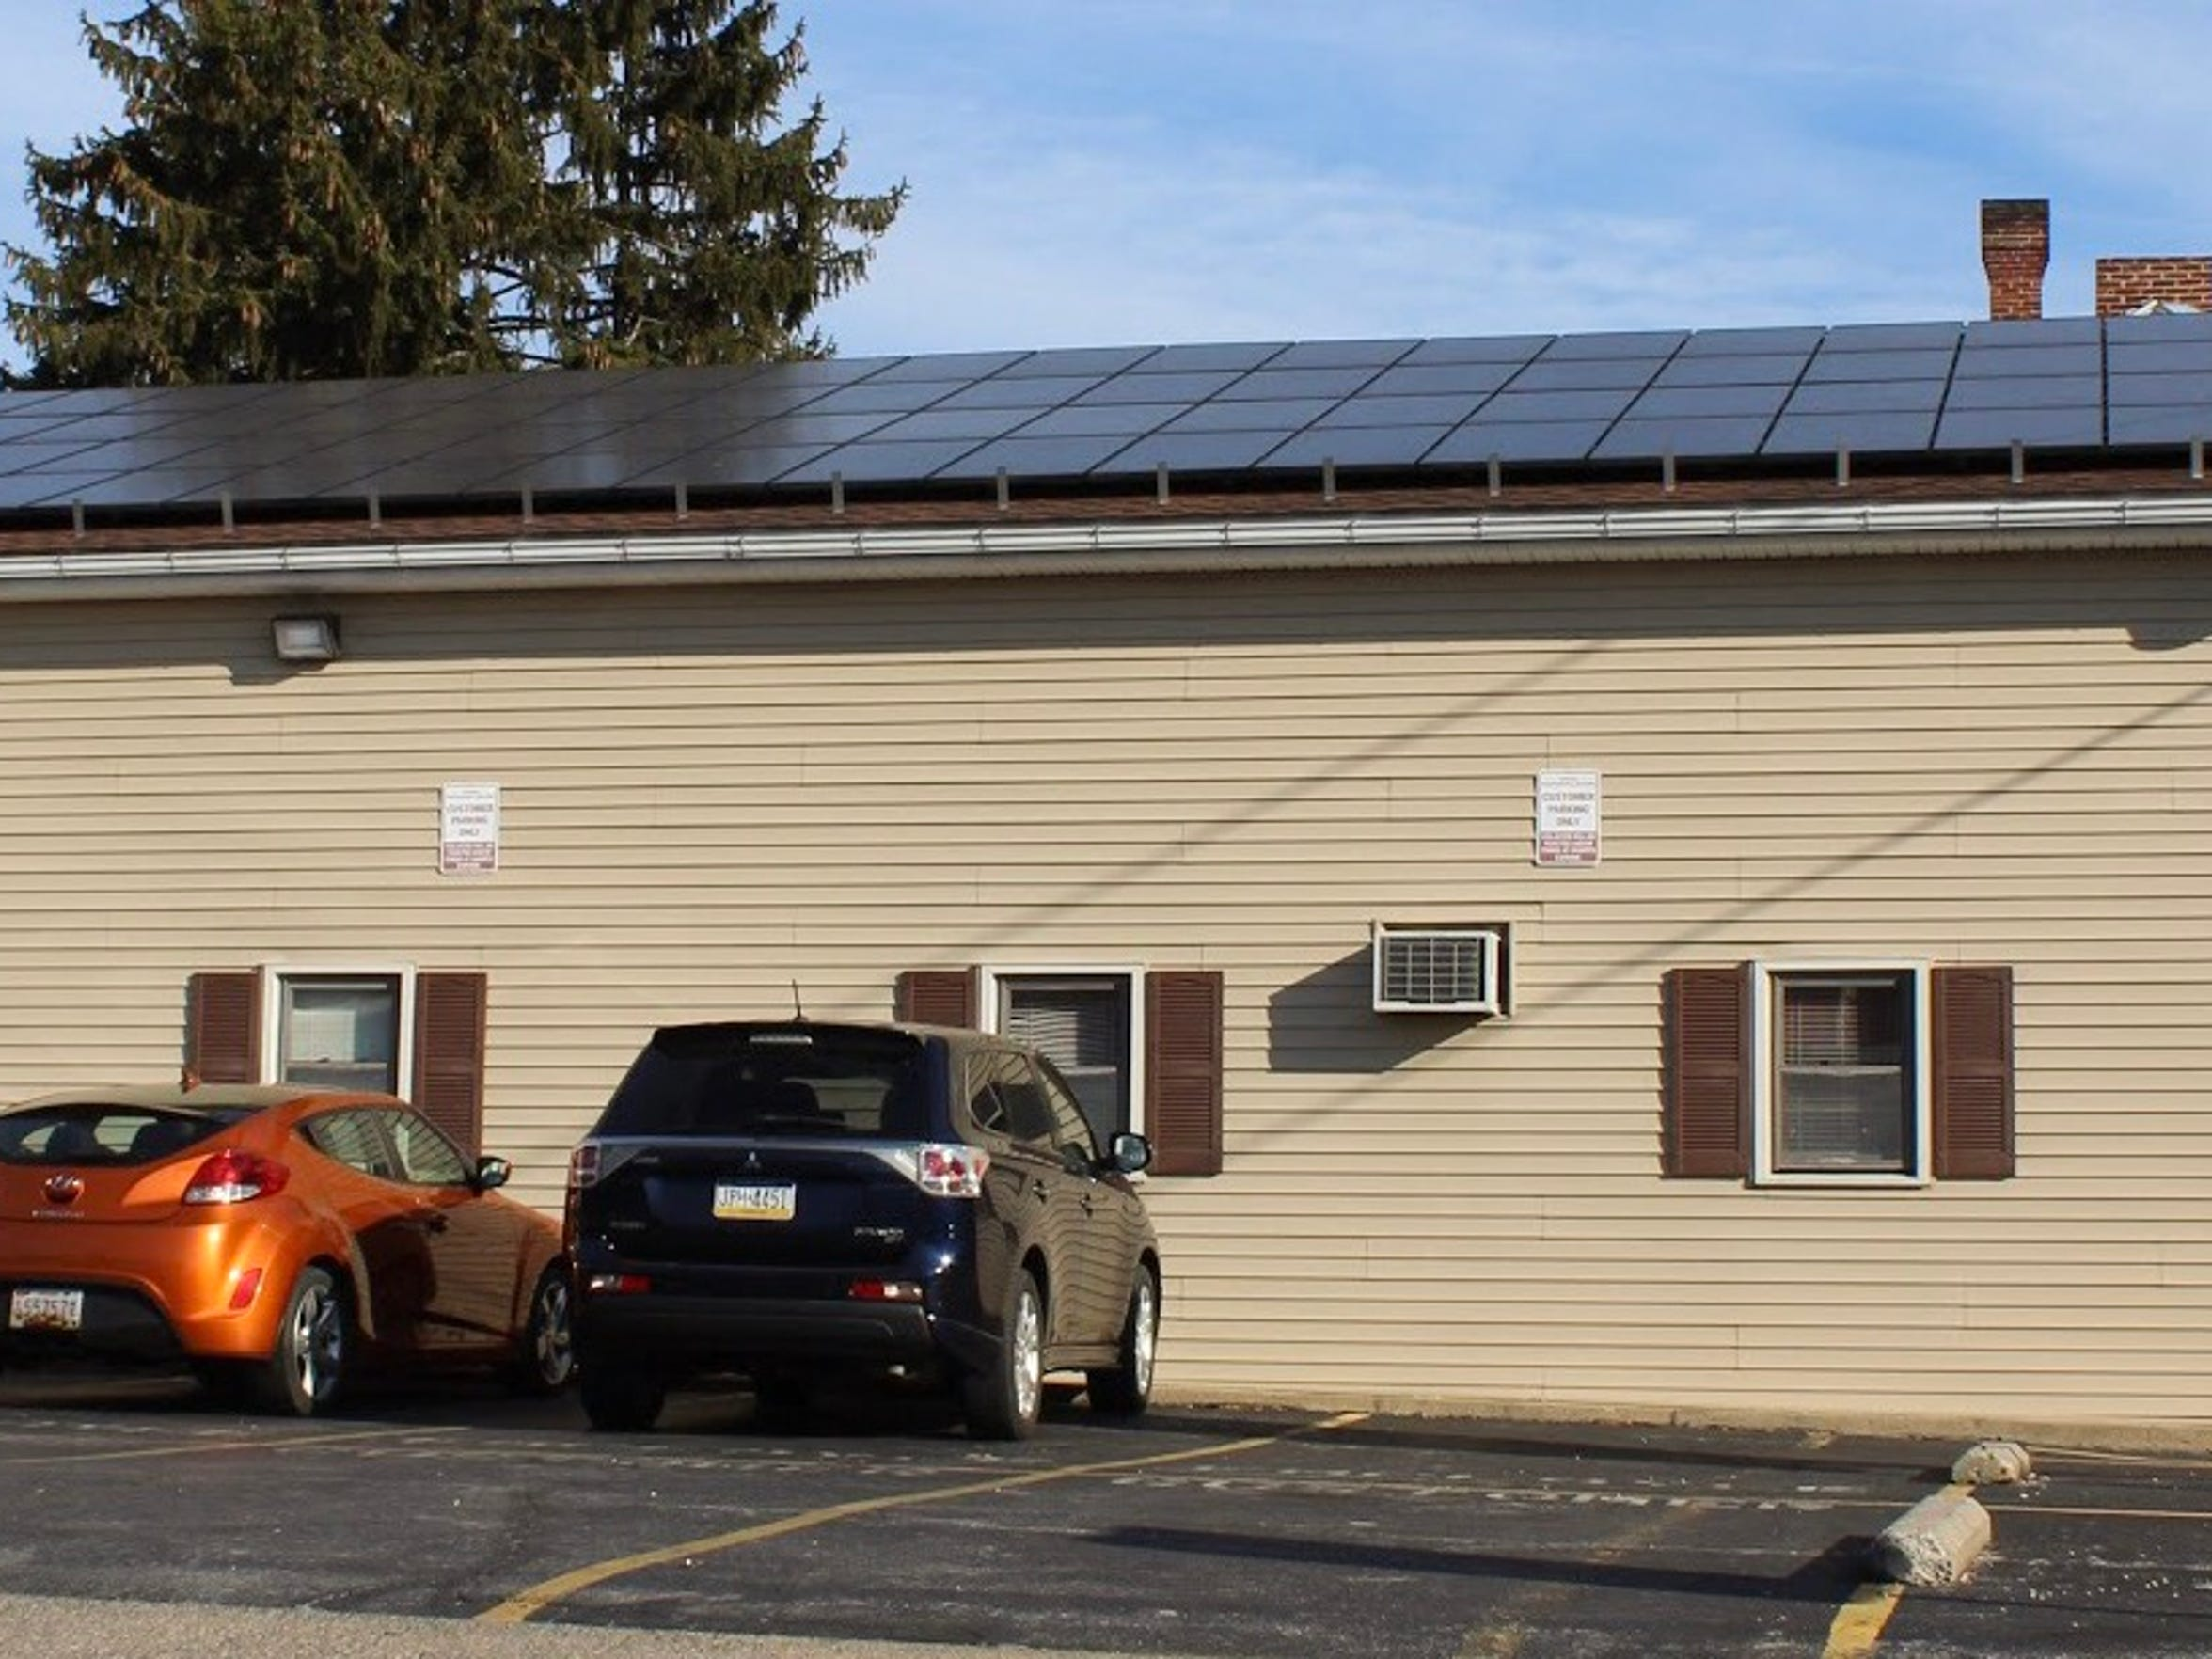 Business owner Mike Cermak installed 96 solar panels on his computer business' roof on South Potomac Street in Waynesboro. Cermak also installed solar panels on the roof of his Chambersburg home.